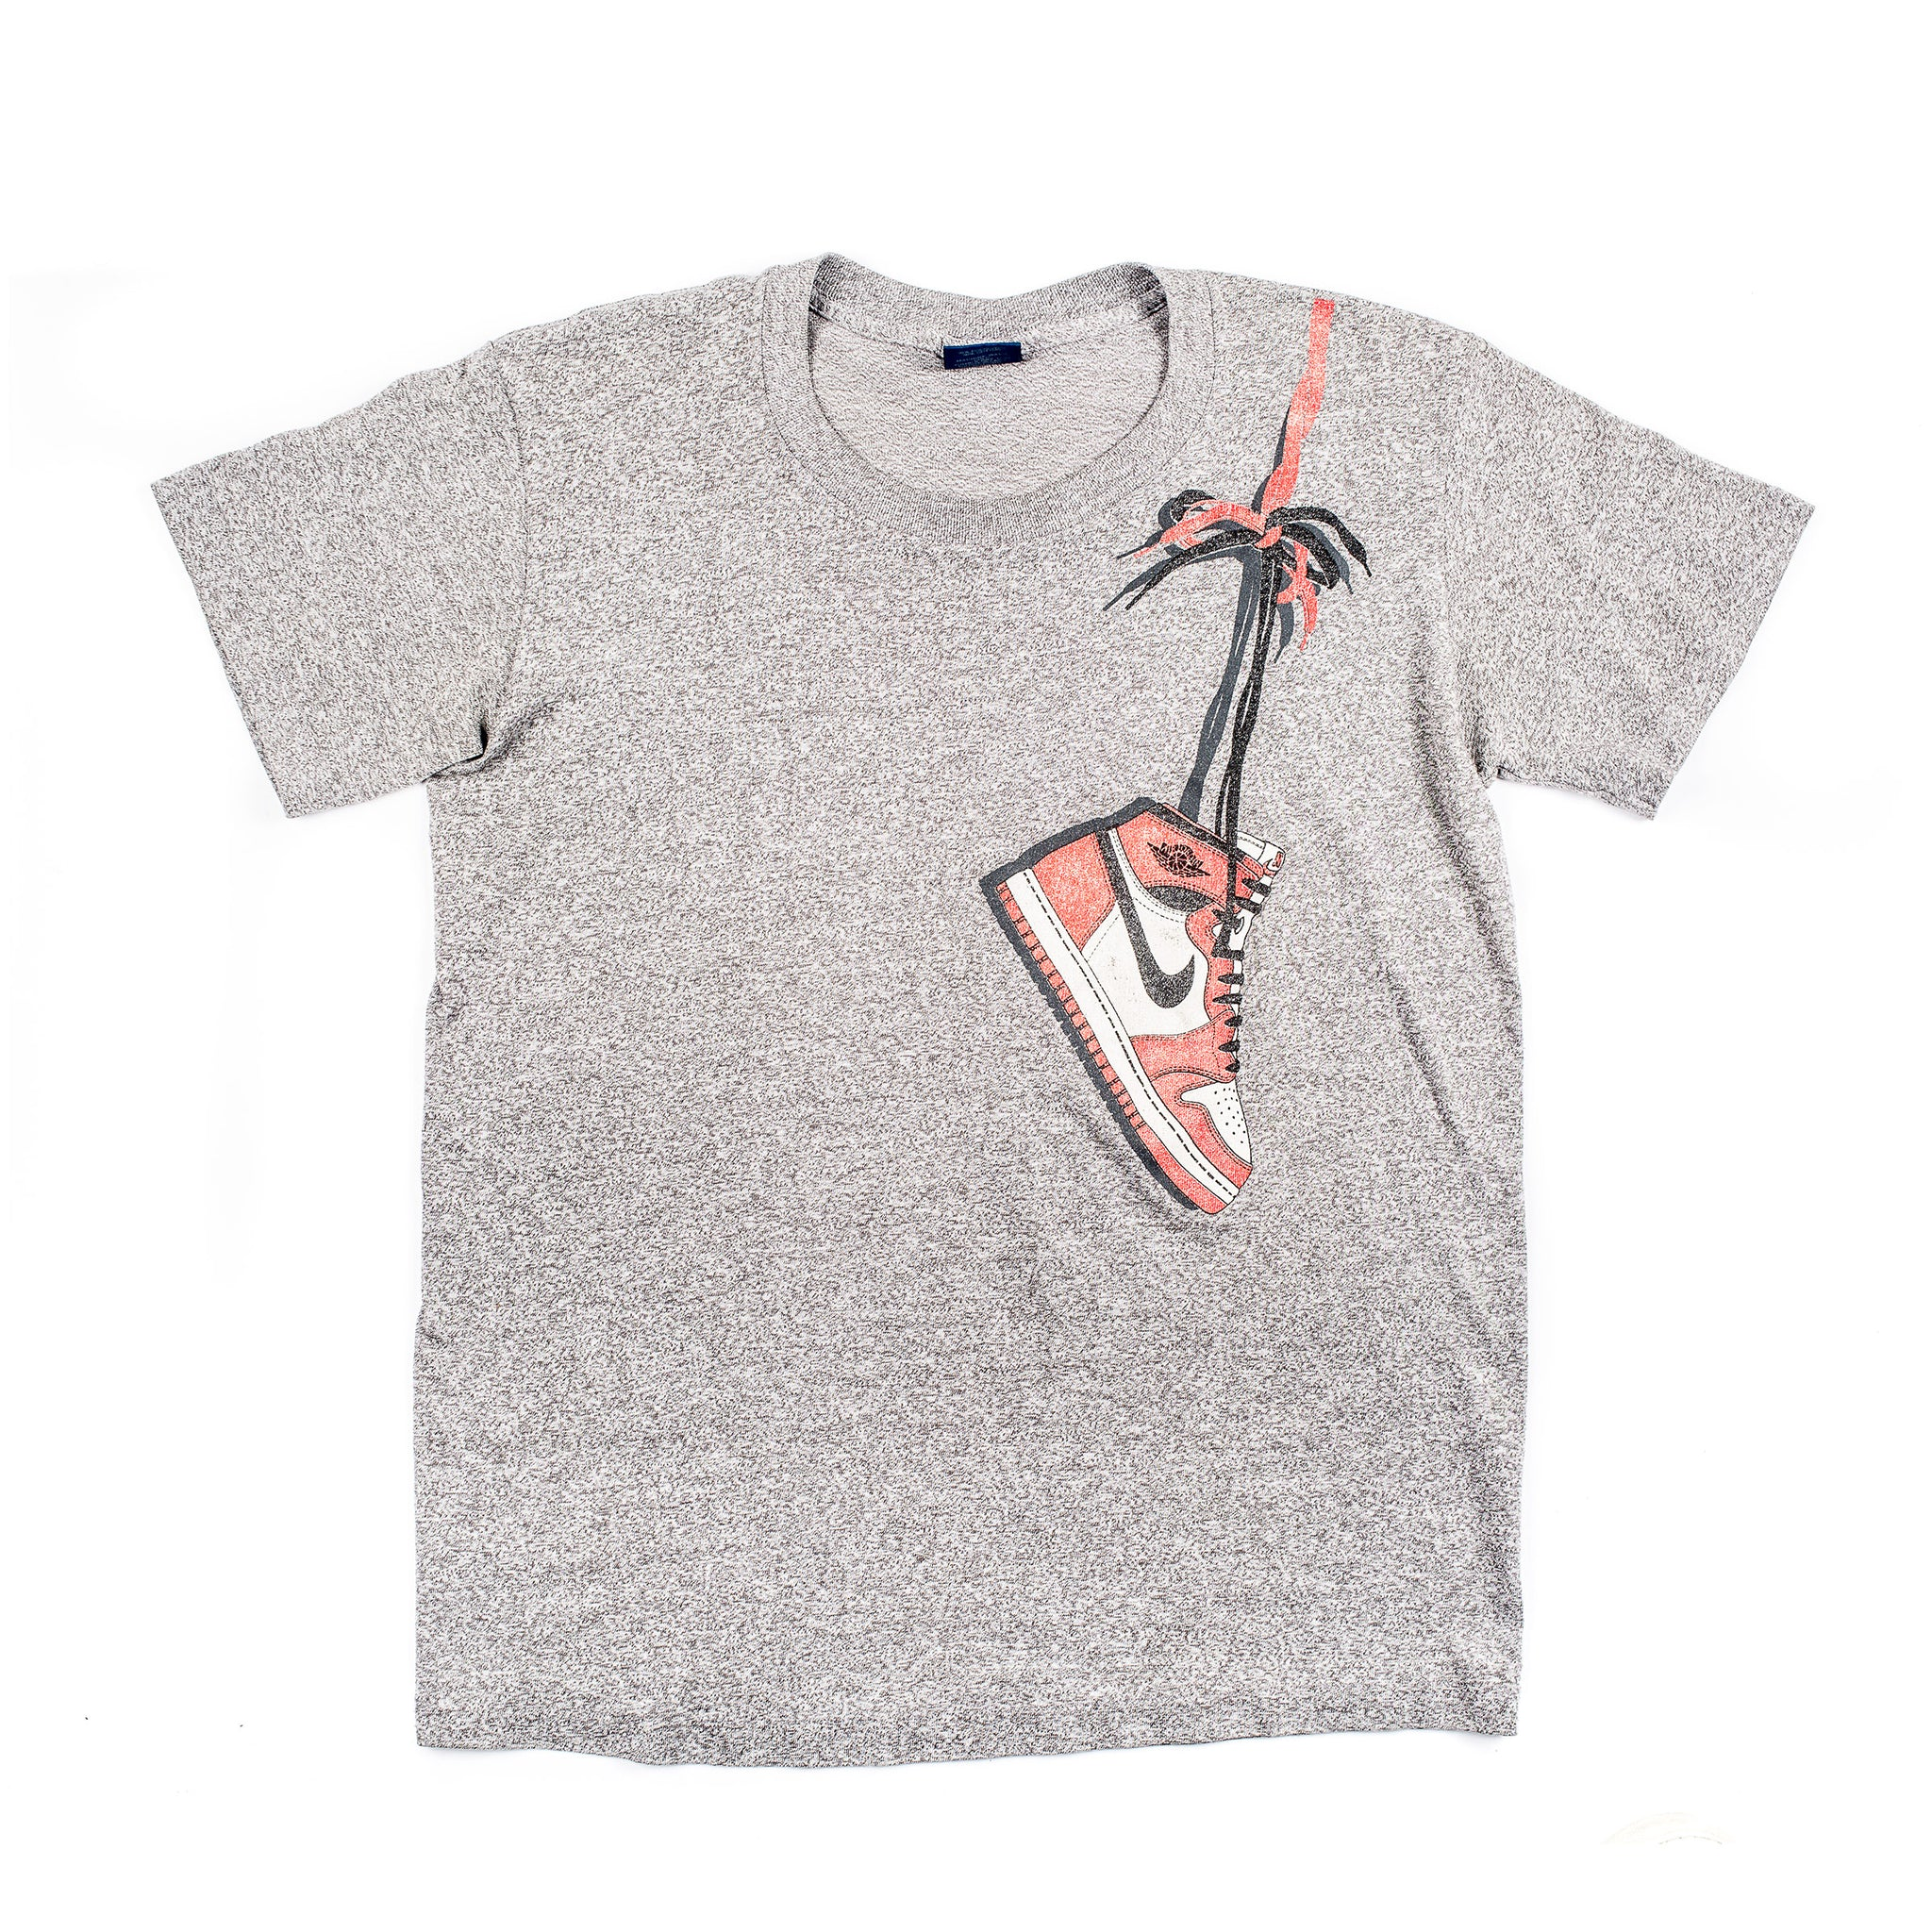 cb65d1559d4 Load image into Gallery viewer, Vintage Nike Air Jordan 1 Tee Shirt ...